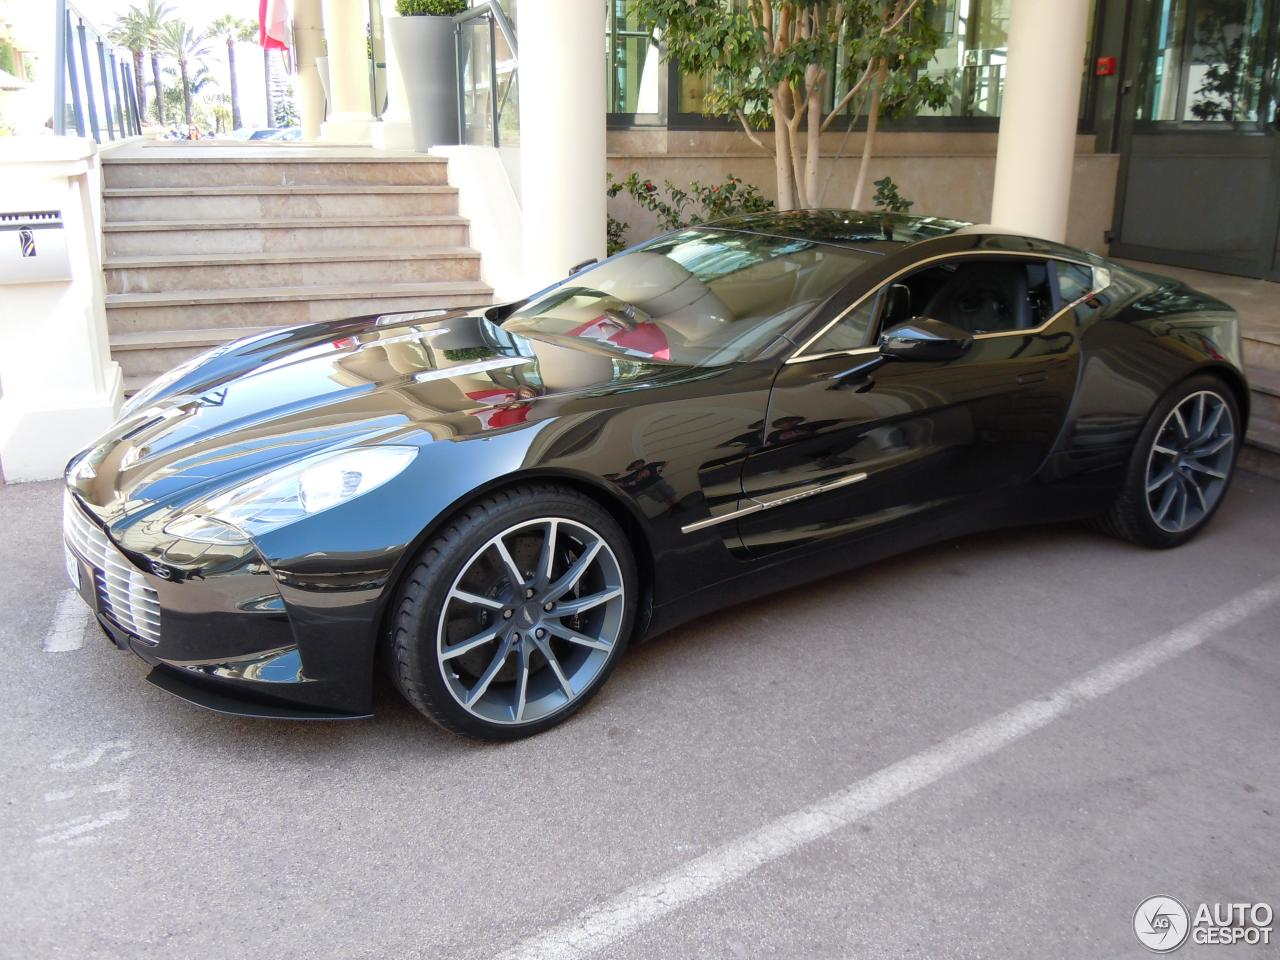 Aston Martin One 77 Price in India 5 i Aston Martin One 77 5